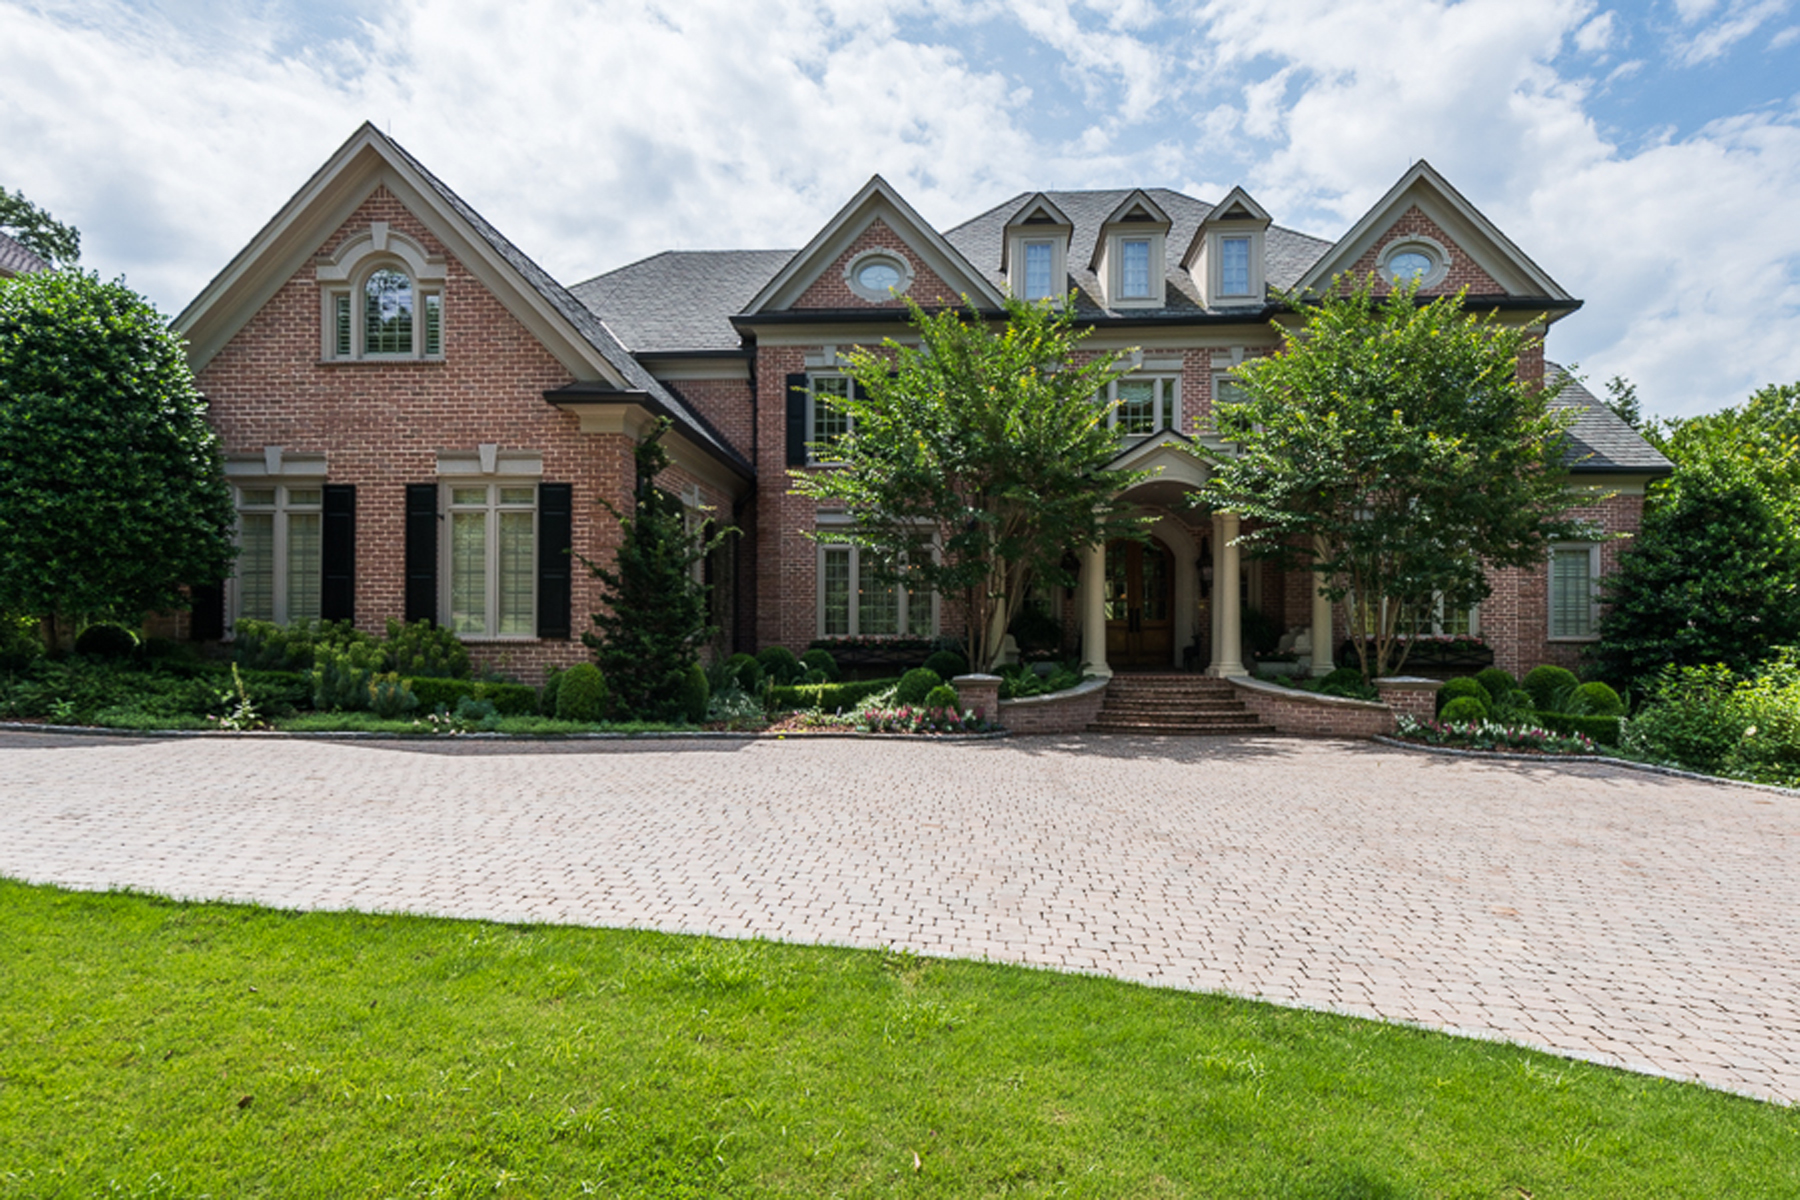 一戸建て のために 売買 アット A Masterpiece In Johns Creek Most Prestigious Gated Golf Community 490 Covington Cove Alpharetta, ジョージア 30022 アメリカ合衆国